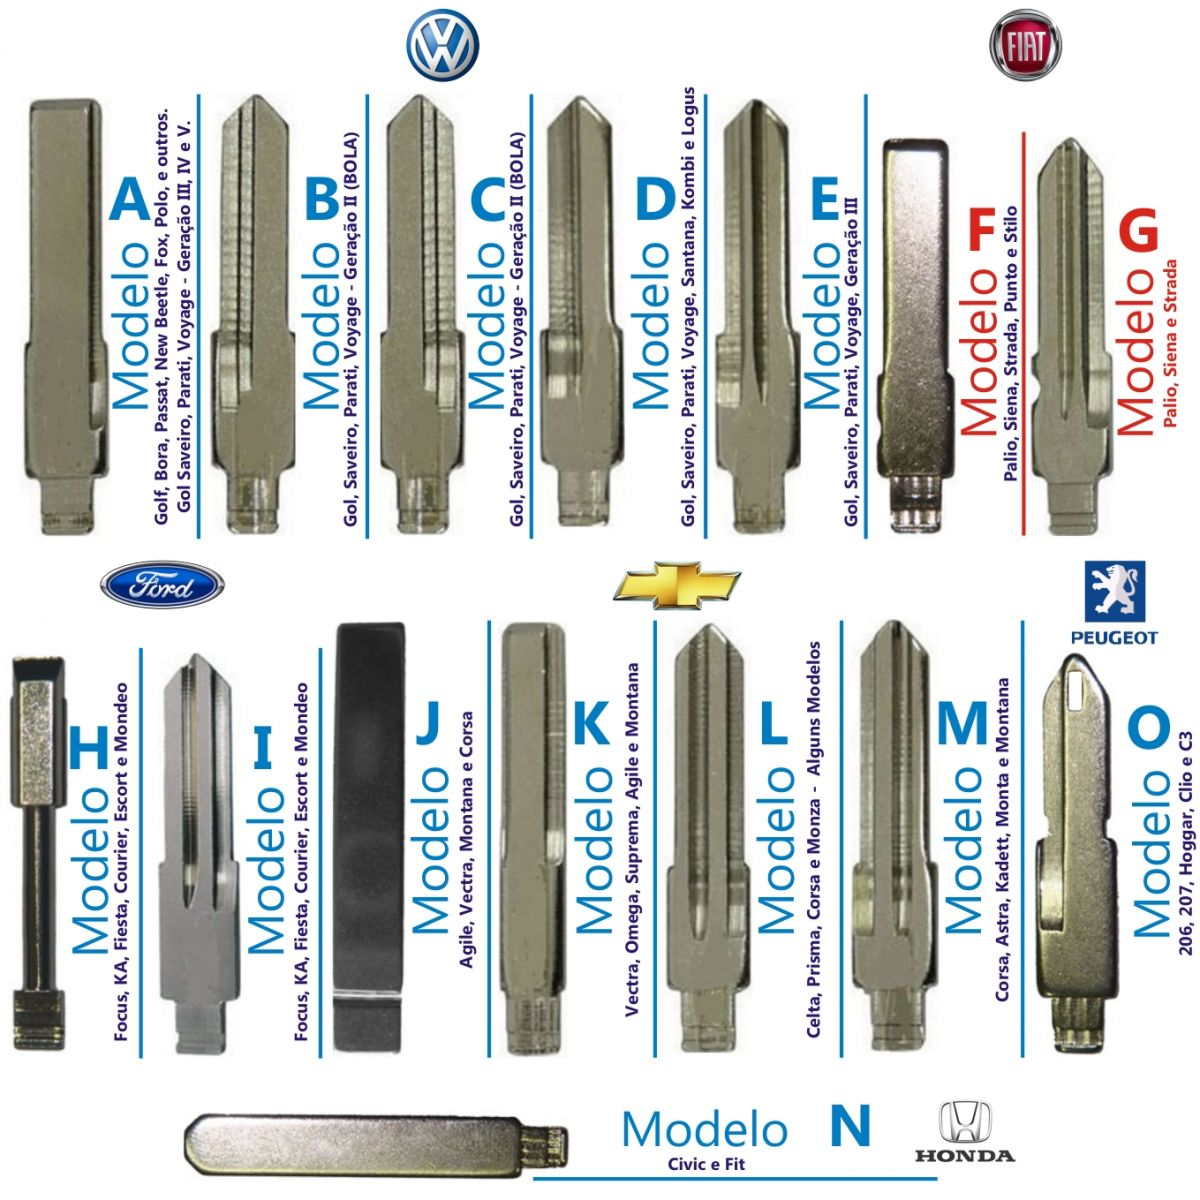 Chave Canivete Cromada + Placa Alarme Positron + Lamina Chevrolet GM VW Fiat Ford Peugeot Renault